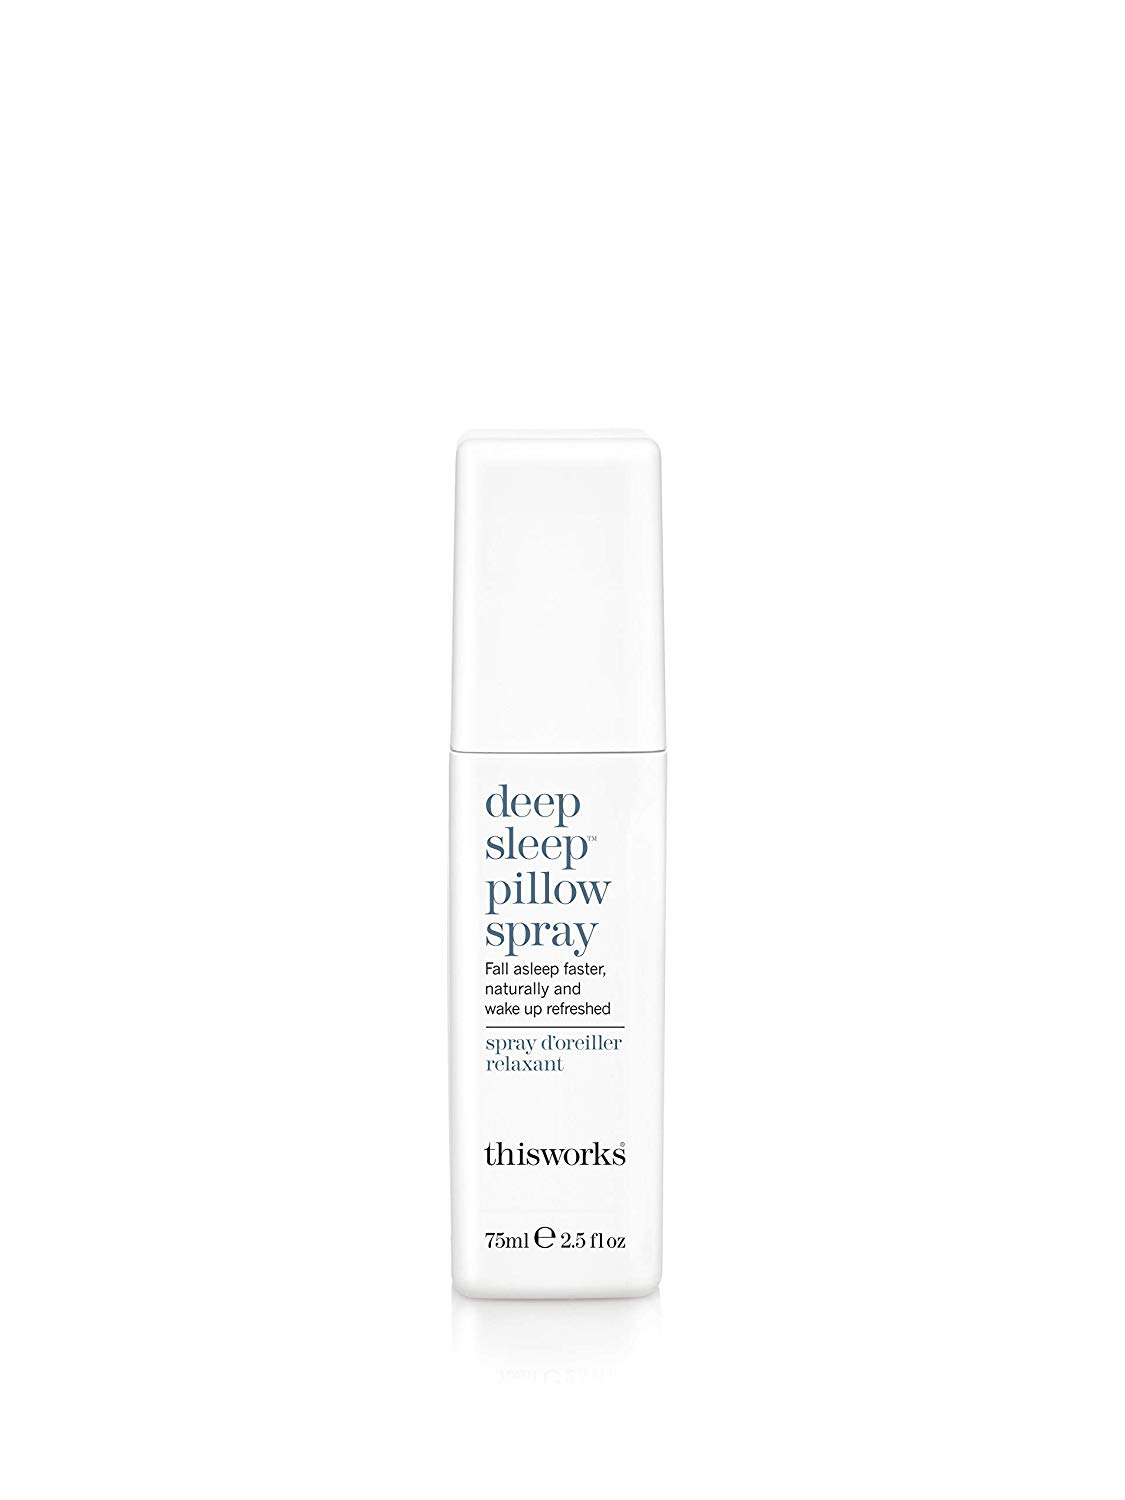 pillow spray, self care gift guide, deep sleep pillow spray